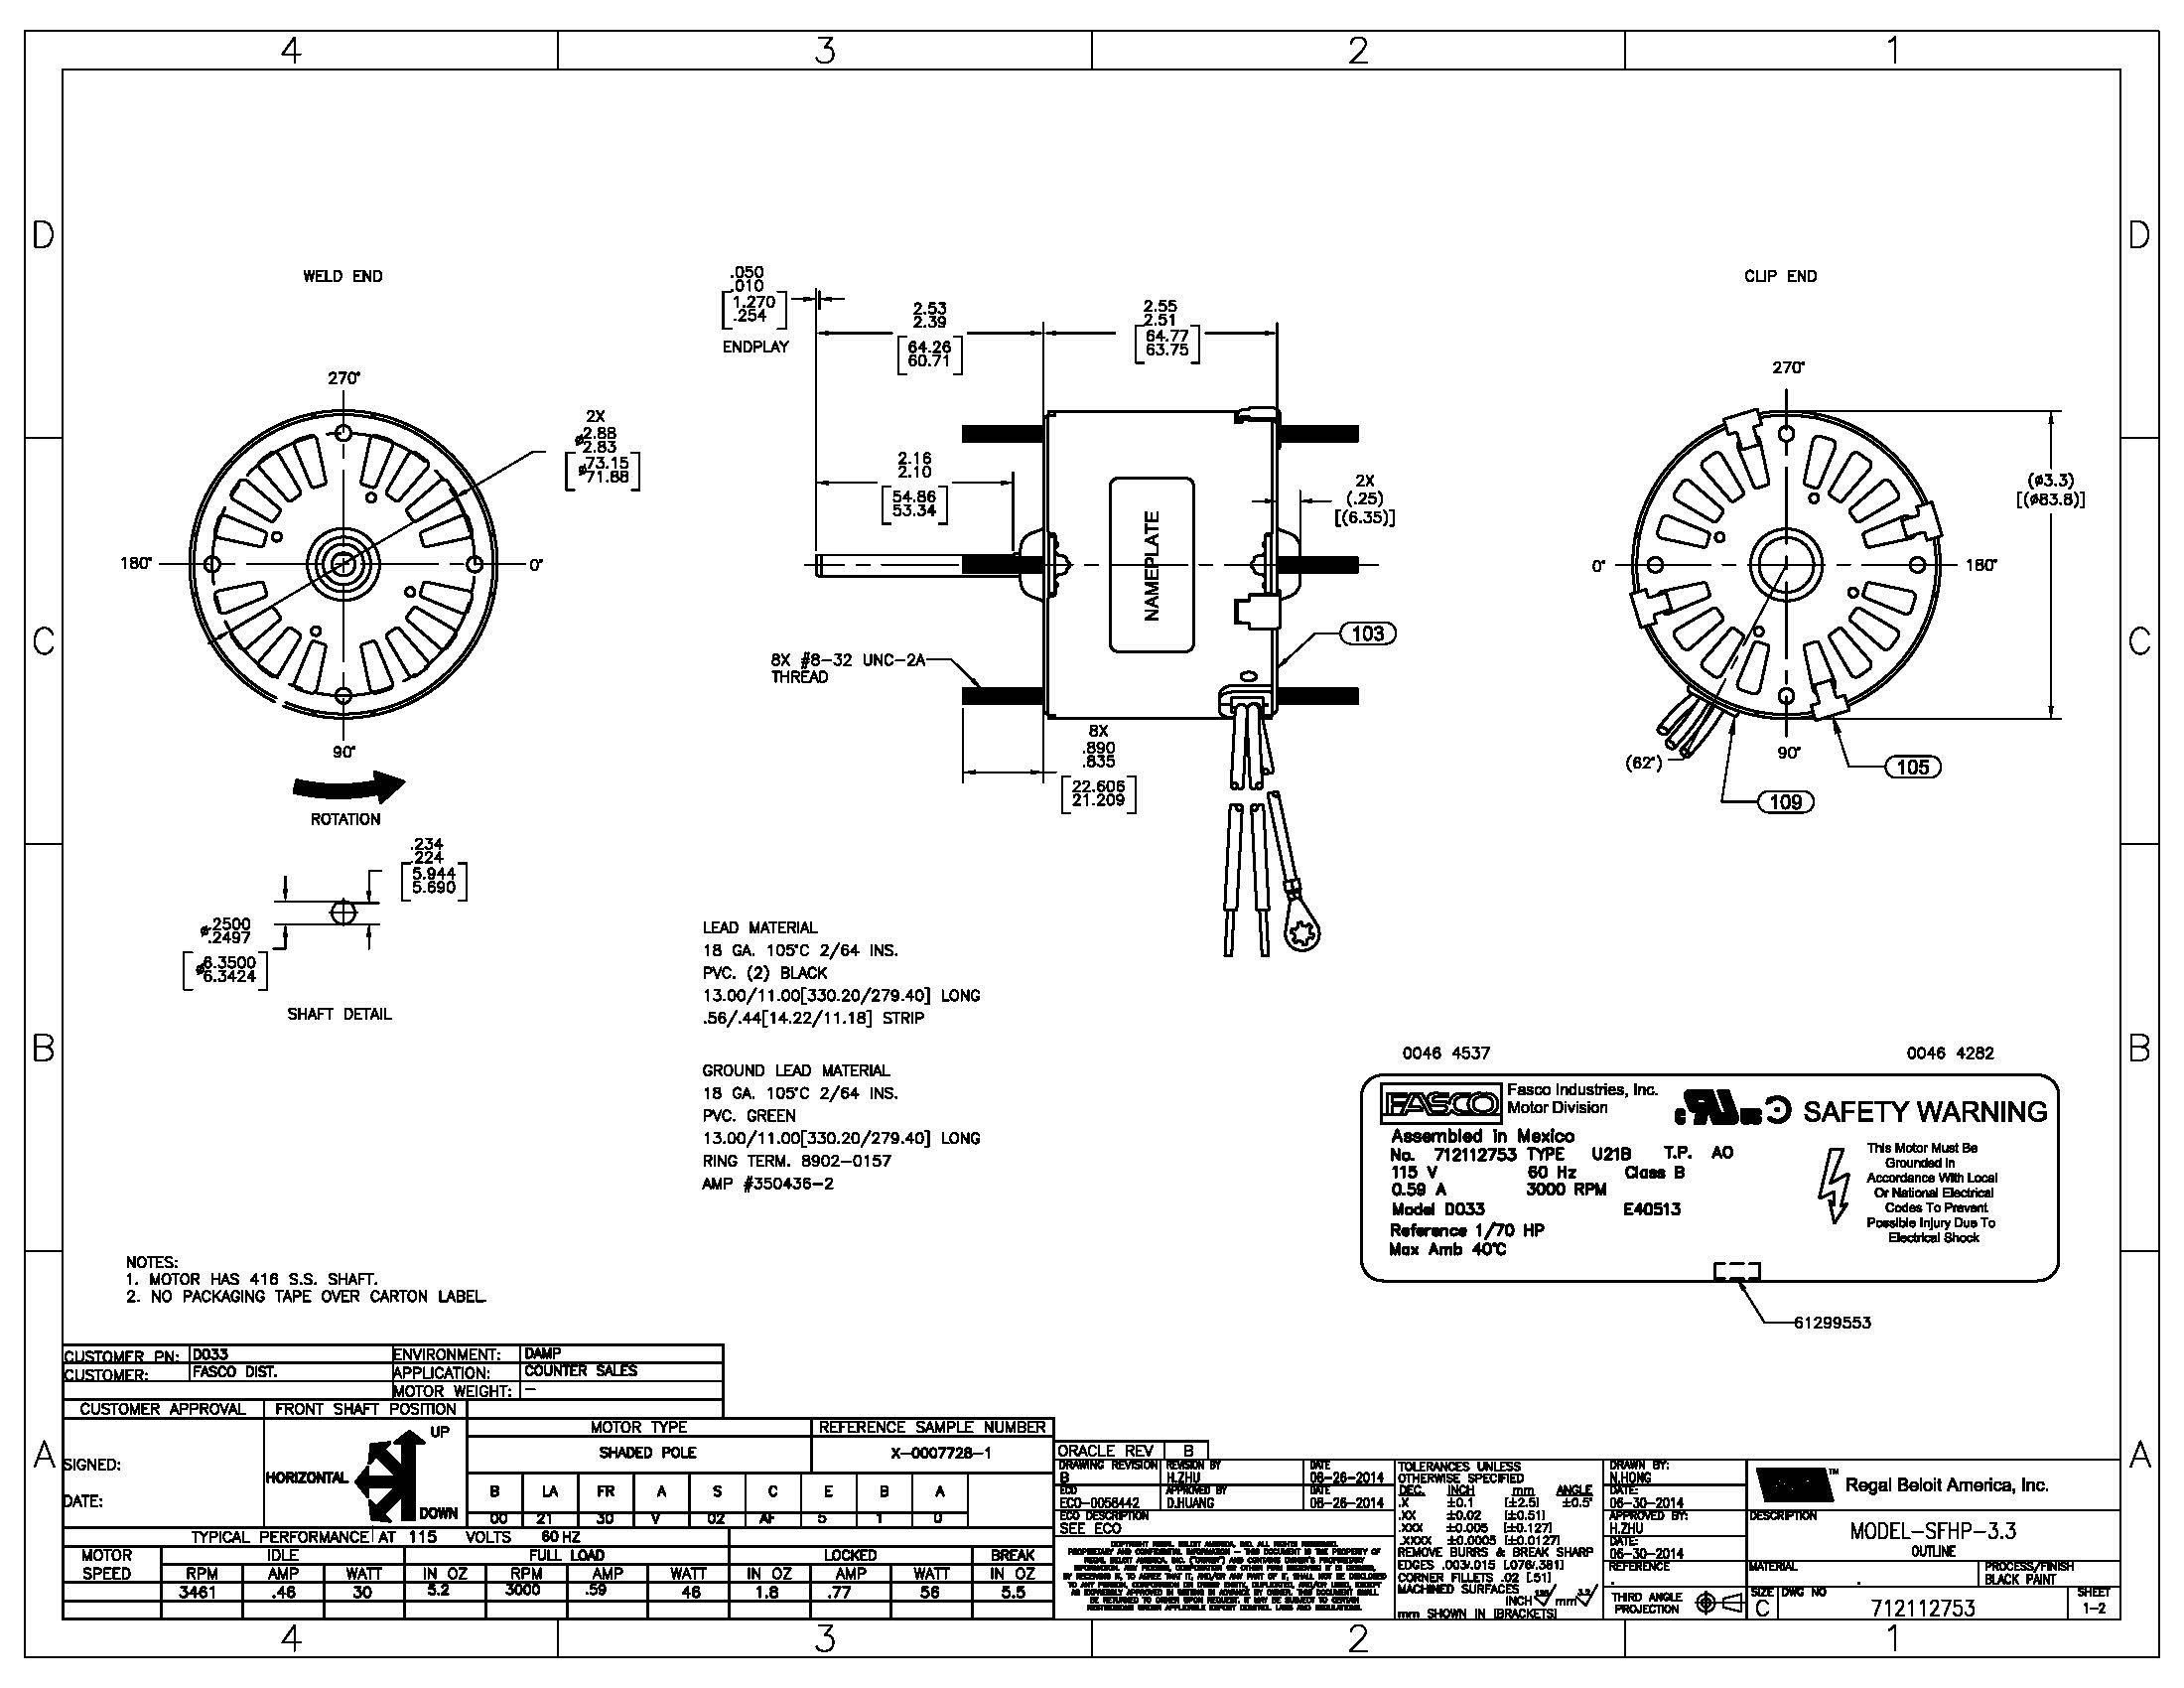 fasco wiring diagrams circuits symbols diagrams u2022 rh merryprintersuk co uk fasco motor wiring diagram fasco d1092 wiring diagram